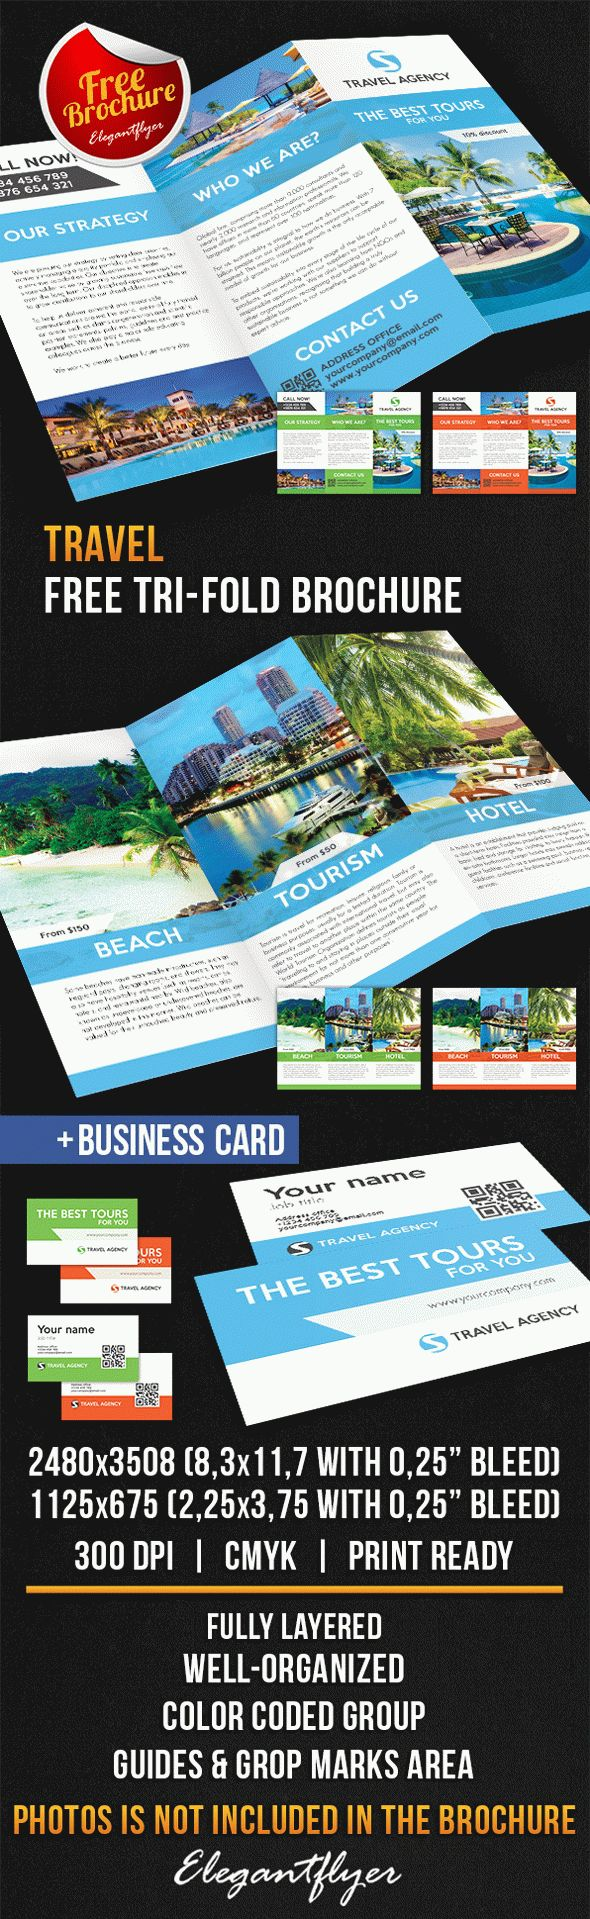 travel brochure template free - travel tri fold brochure free psd template by elegantflyer